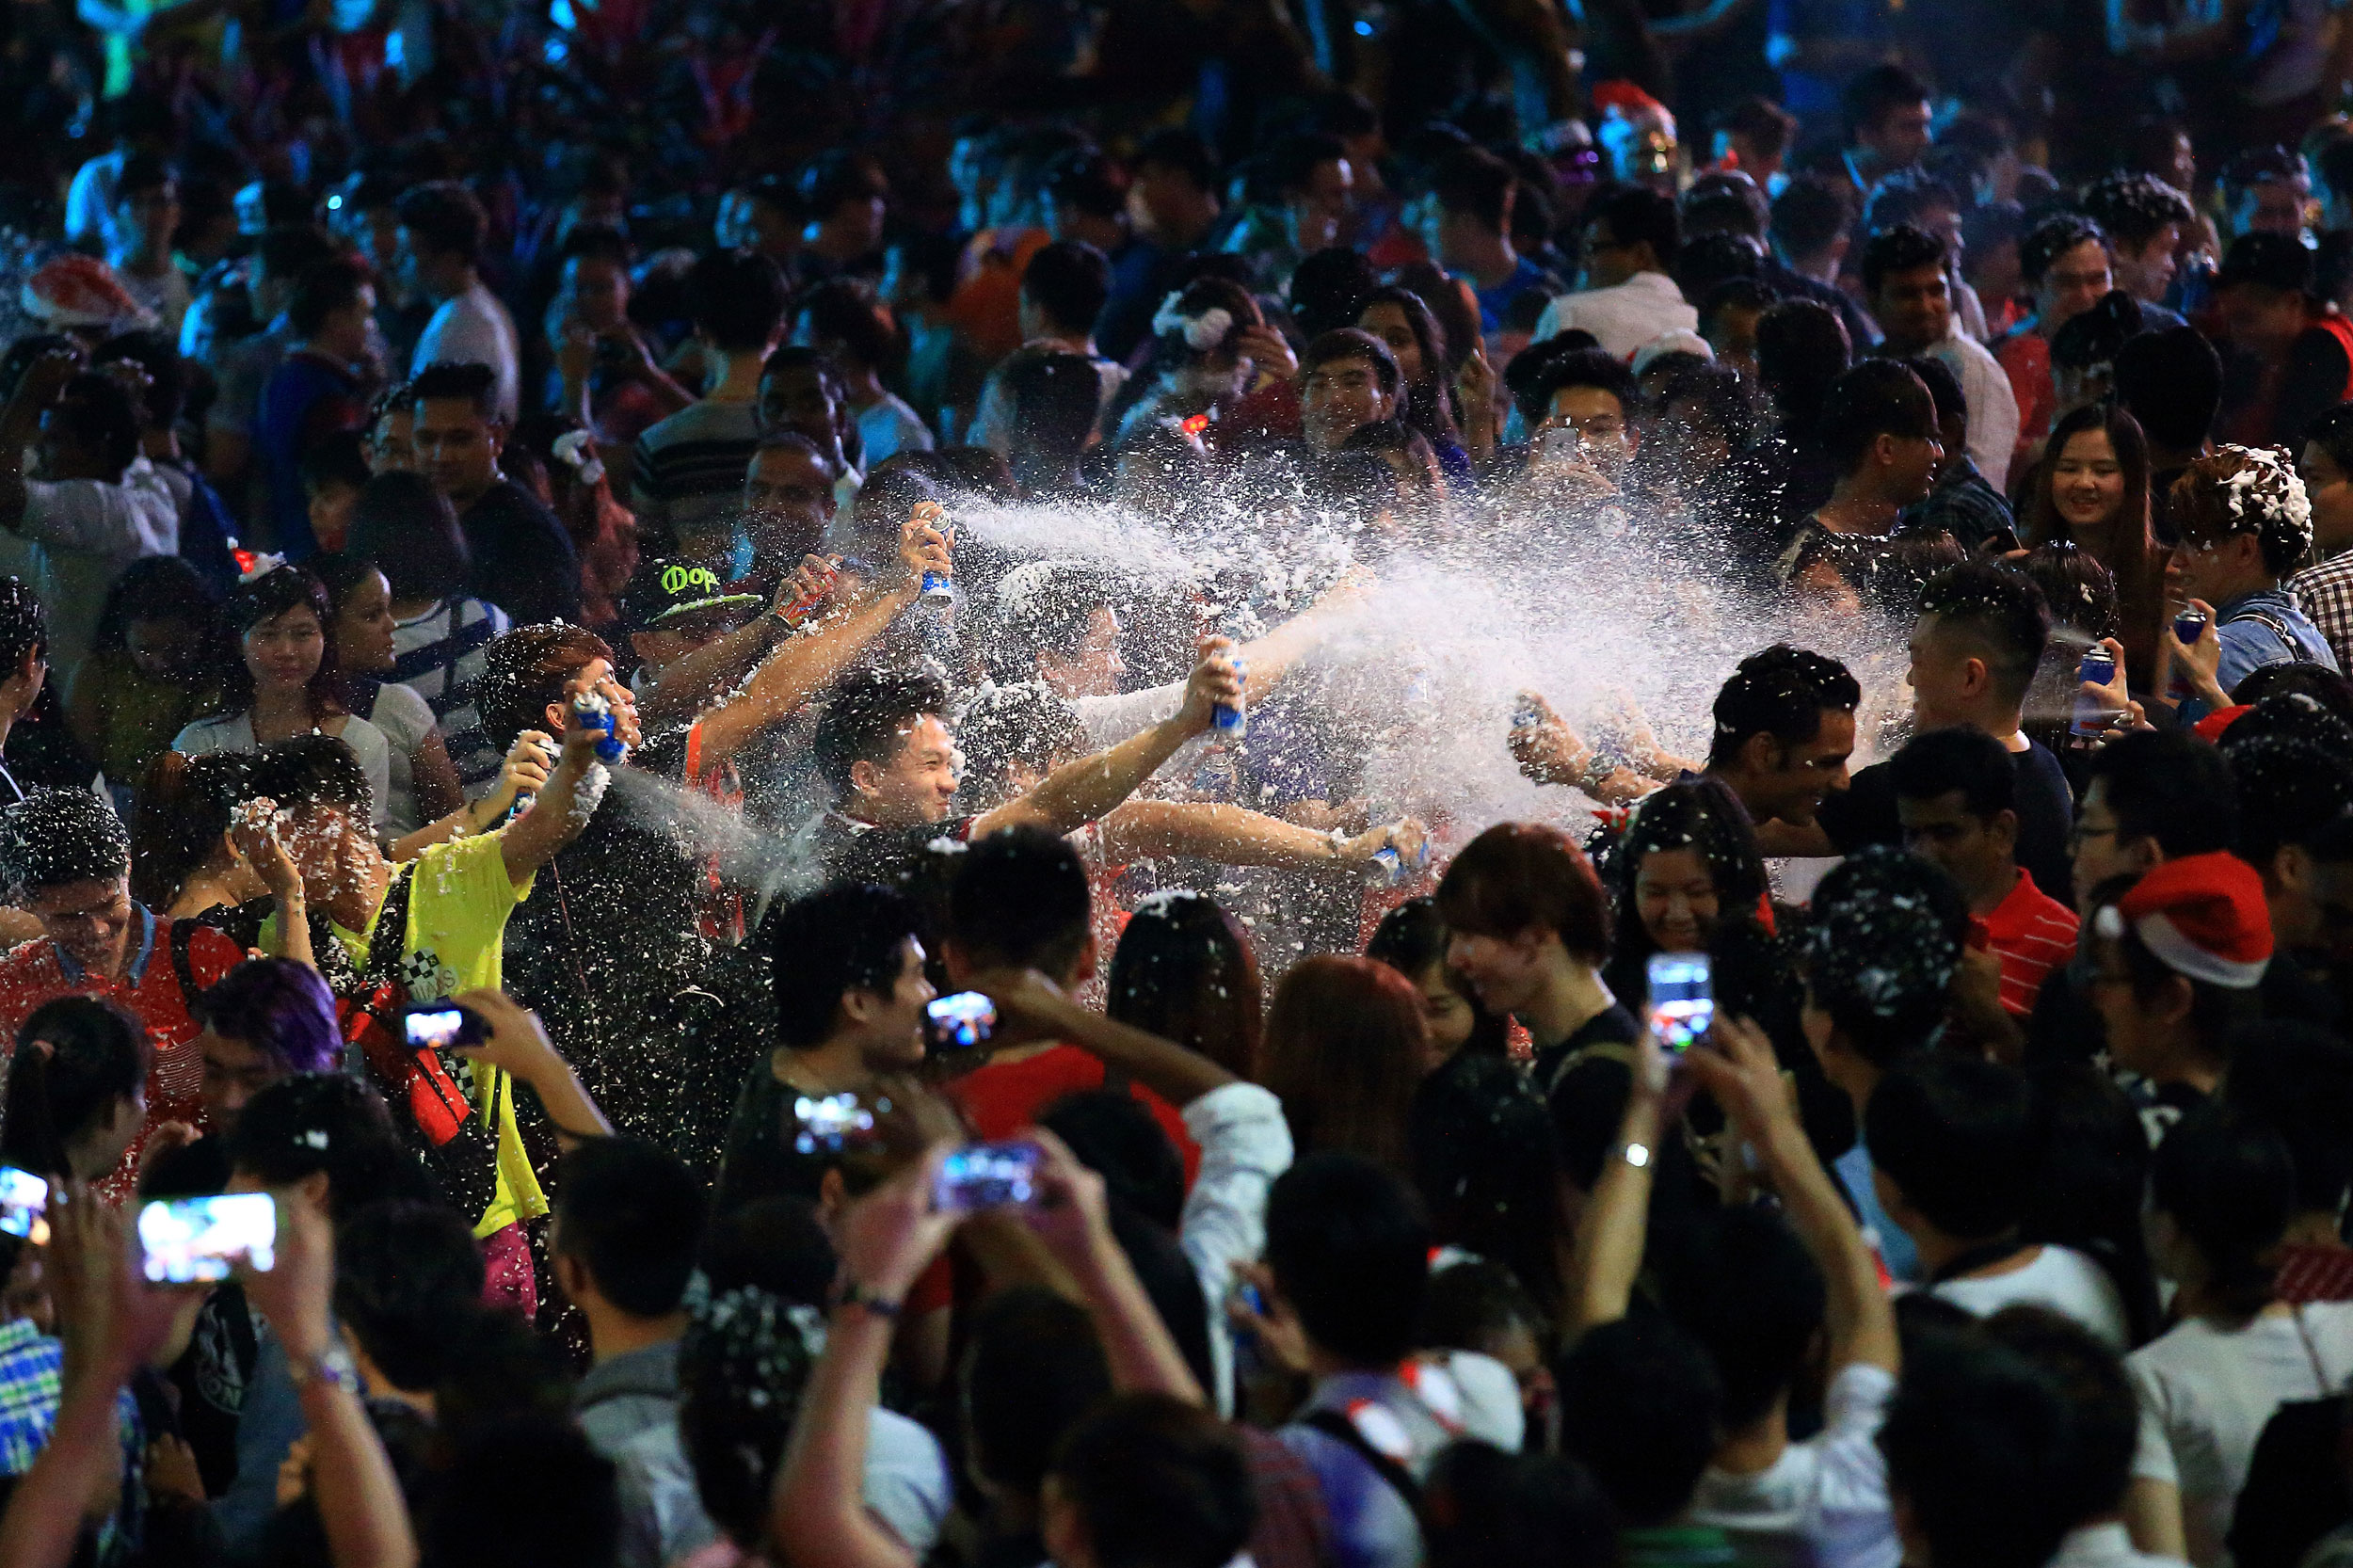 People spray synthetic snow at each other to usher in Christmas along Orchard Road on Dec. 25, 2014 in Singapore.